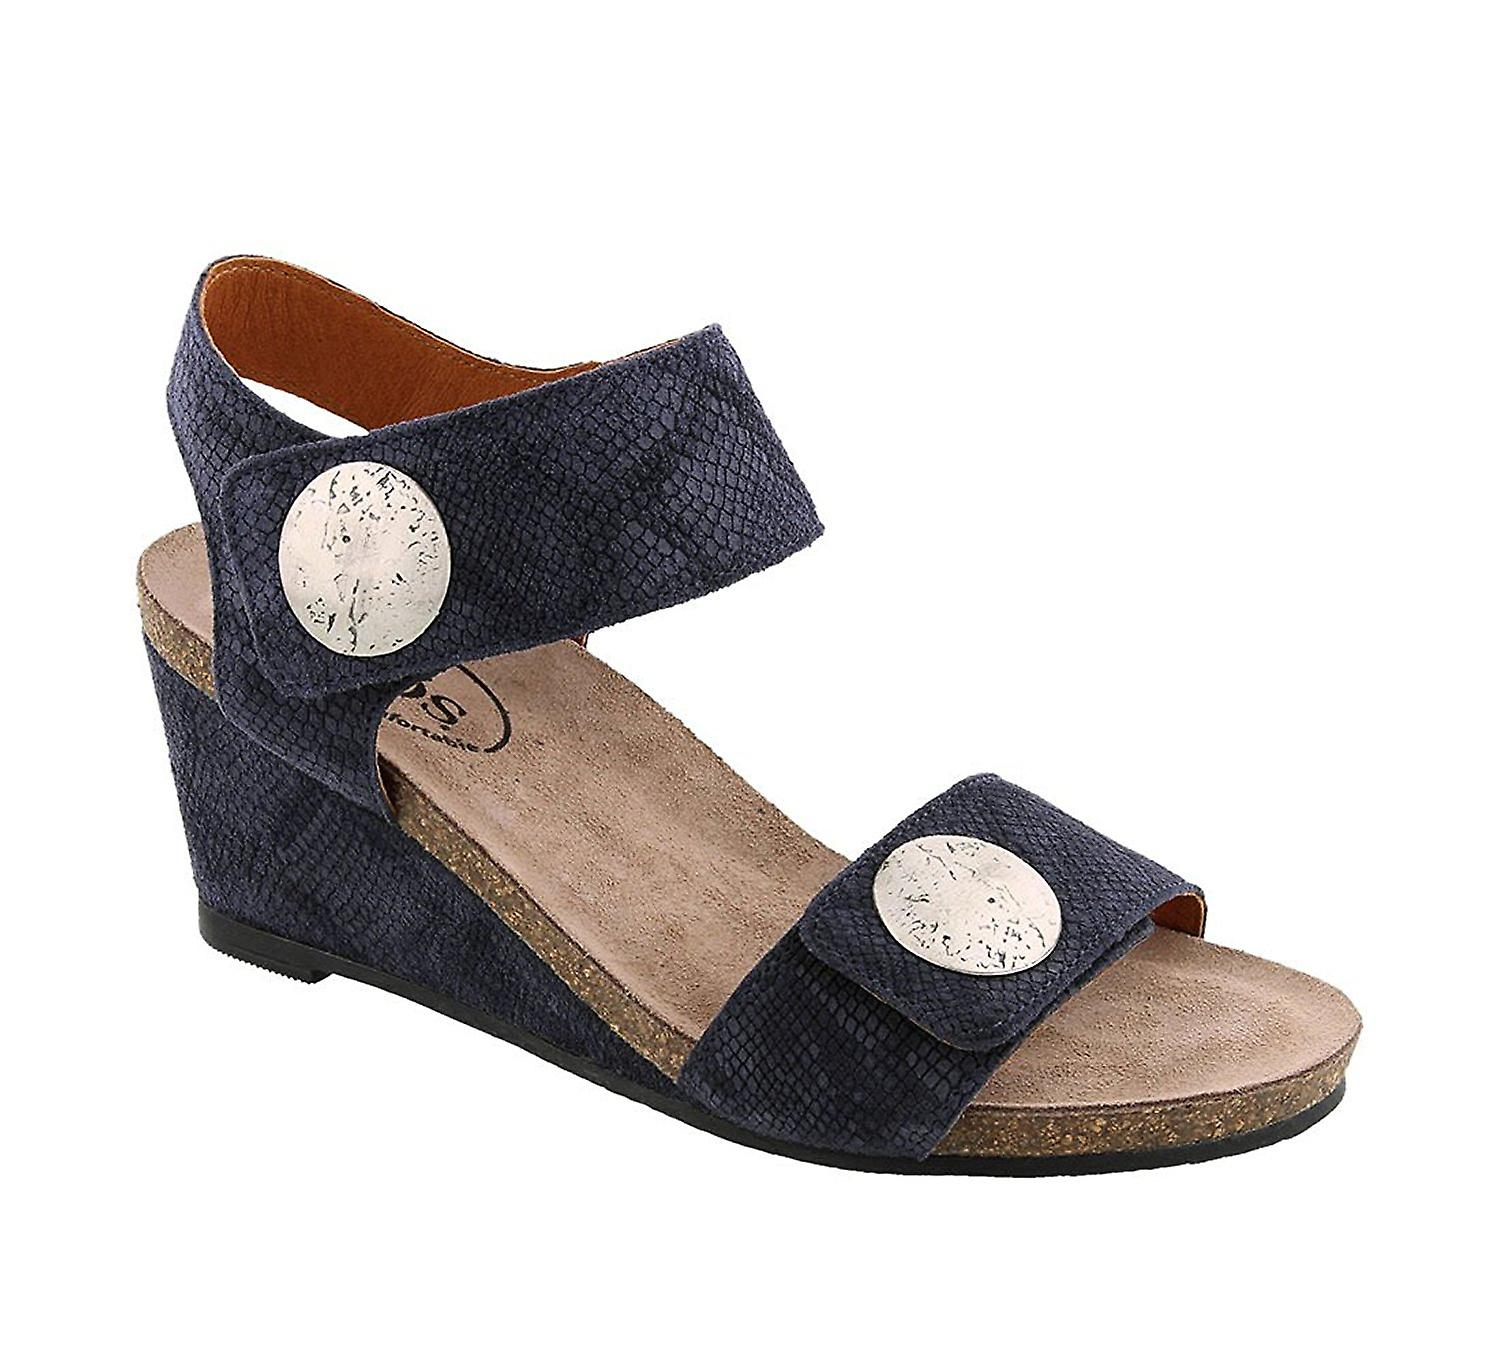 Taos Chaussures femmes Carrousel 2 cuir Open Toe occasionnels Strappy Sandals